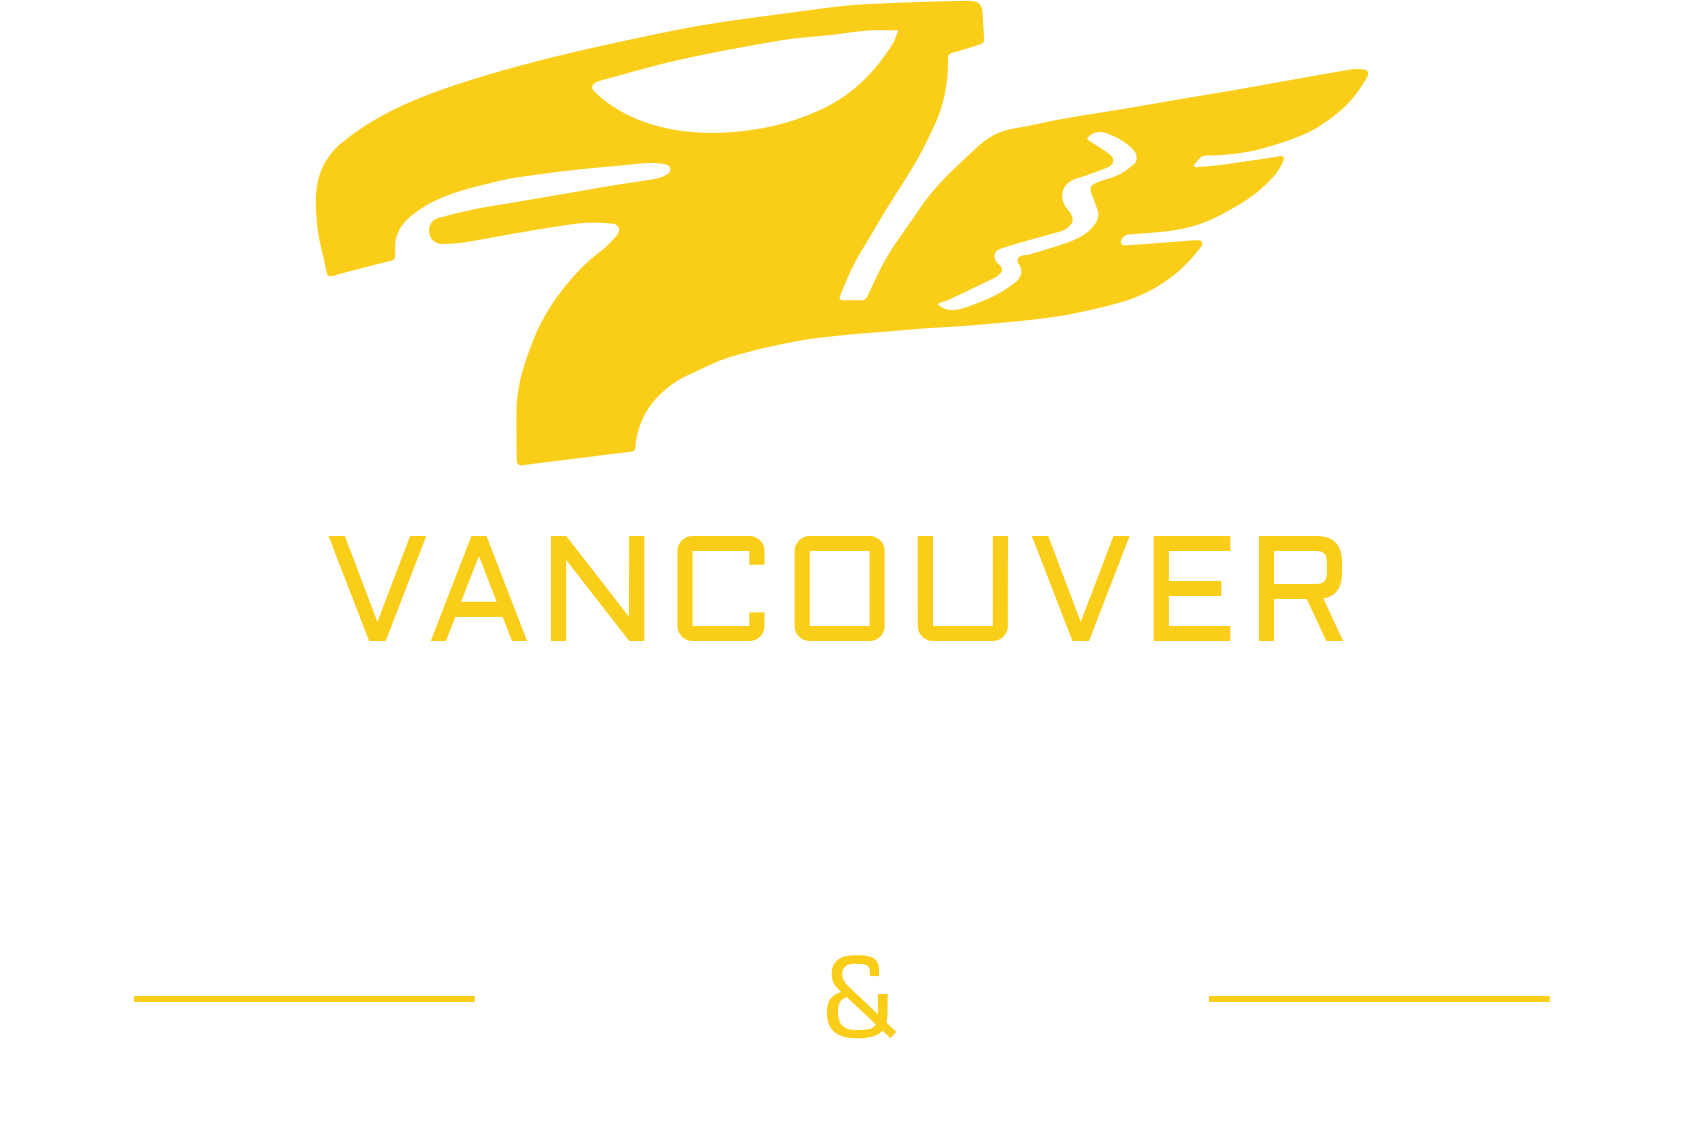 Vancouver Thunderbirds T&F Club